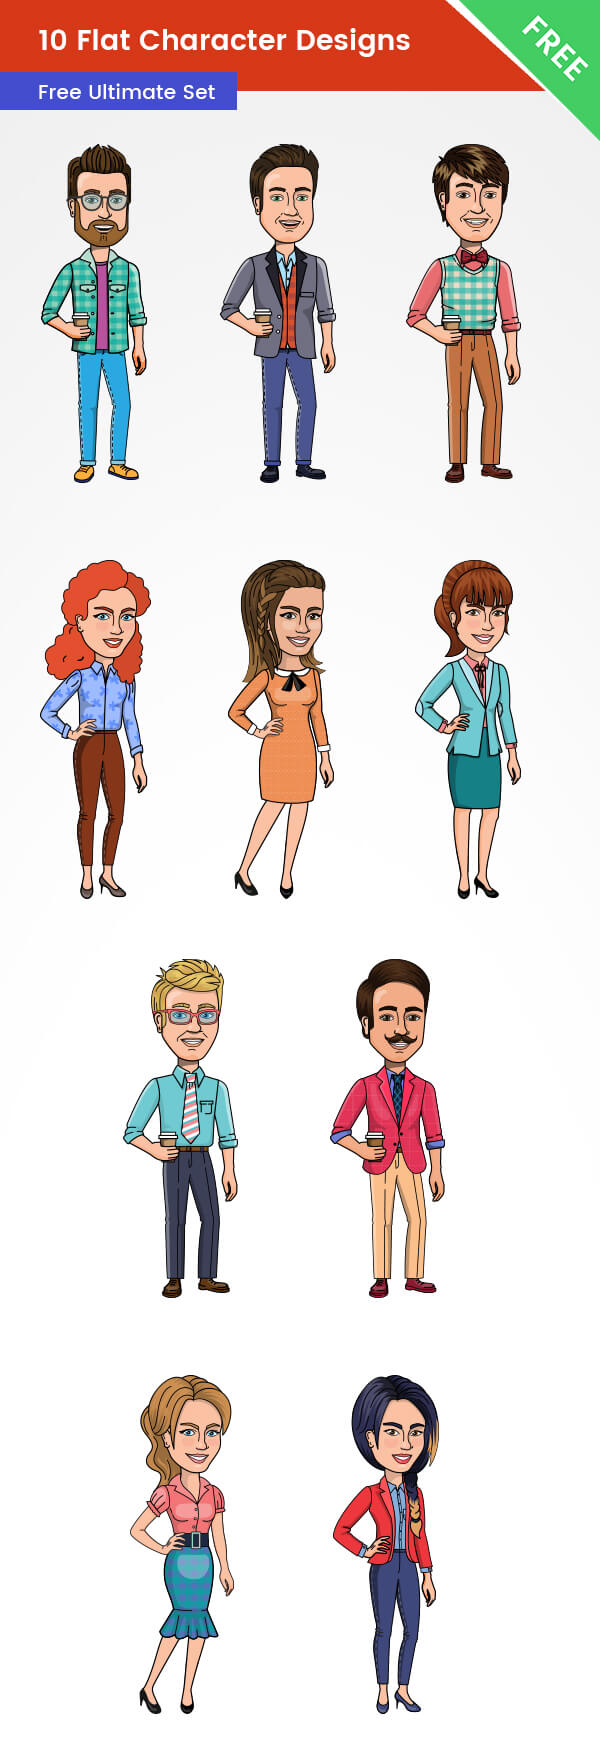 10 Free Flat character Designs